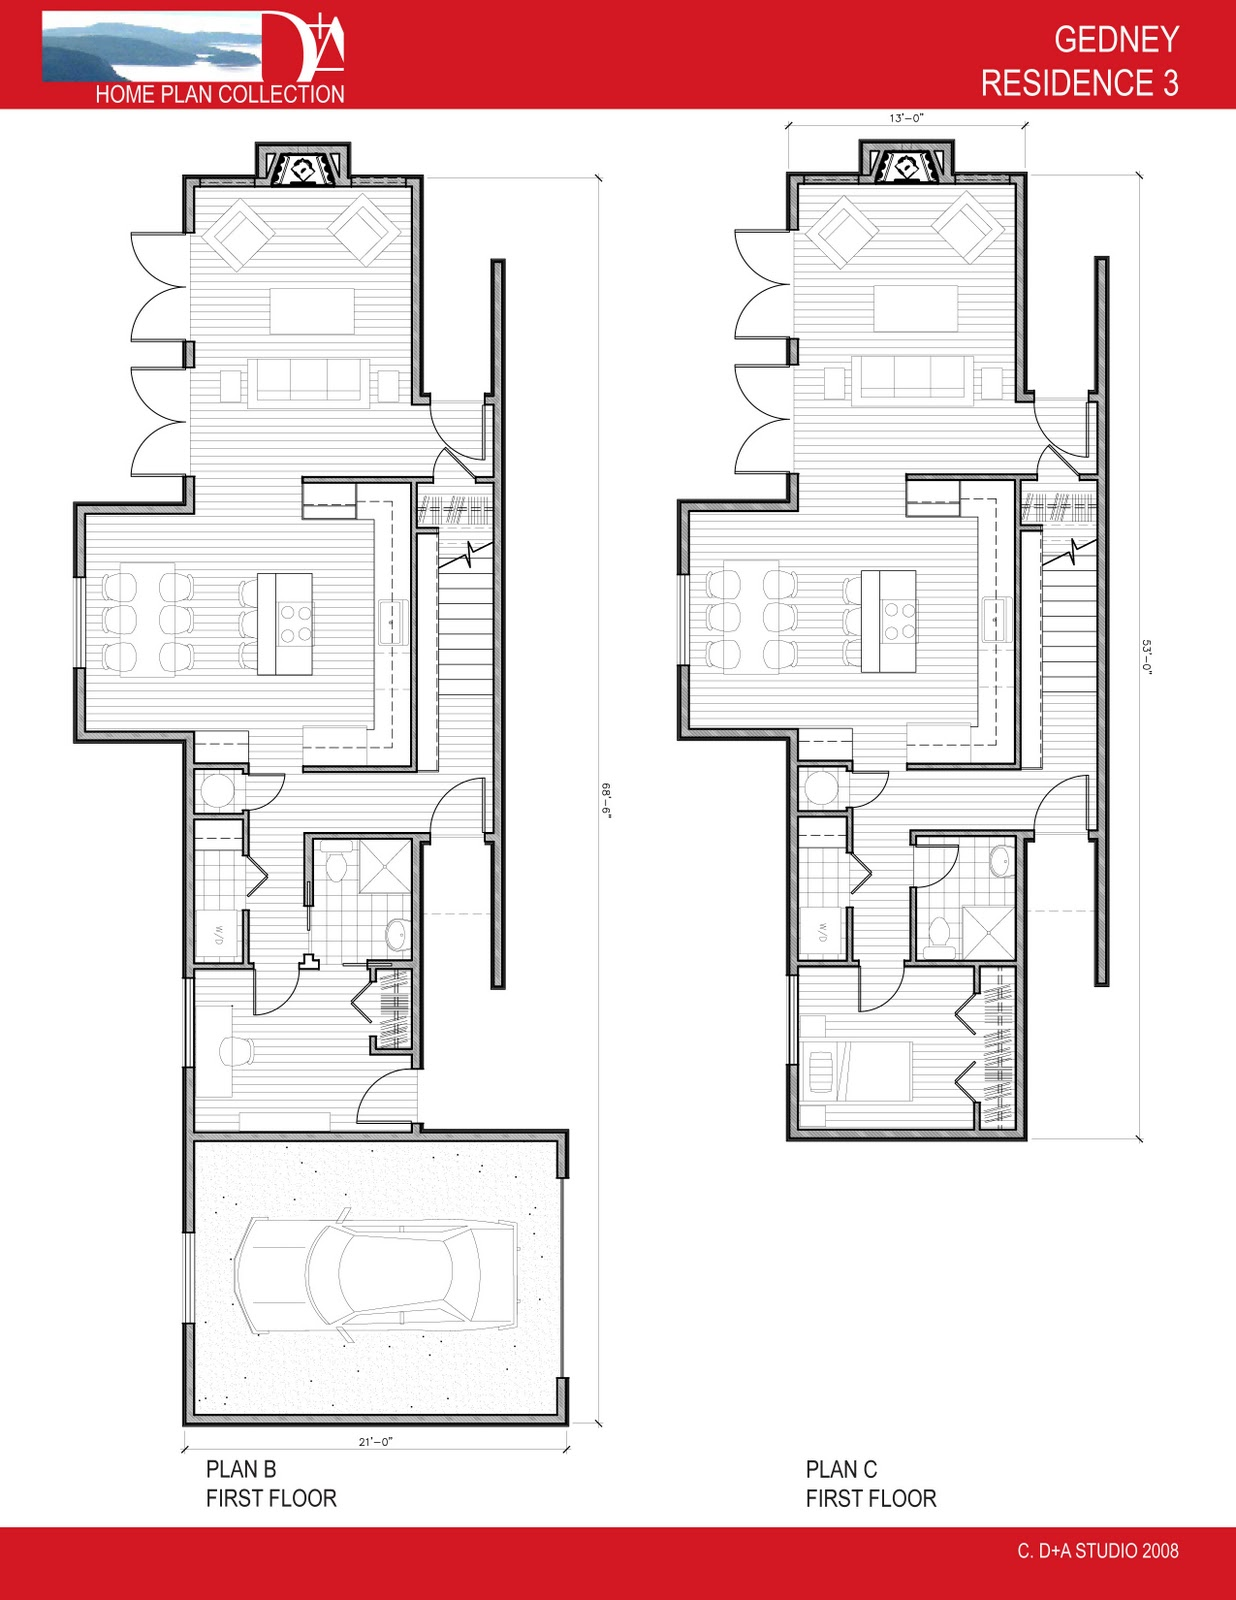 House plans under 1000 square feet 1000 sq ft ranch plans for House plans less than 1000 sf